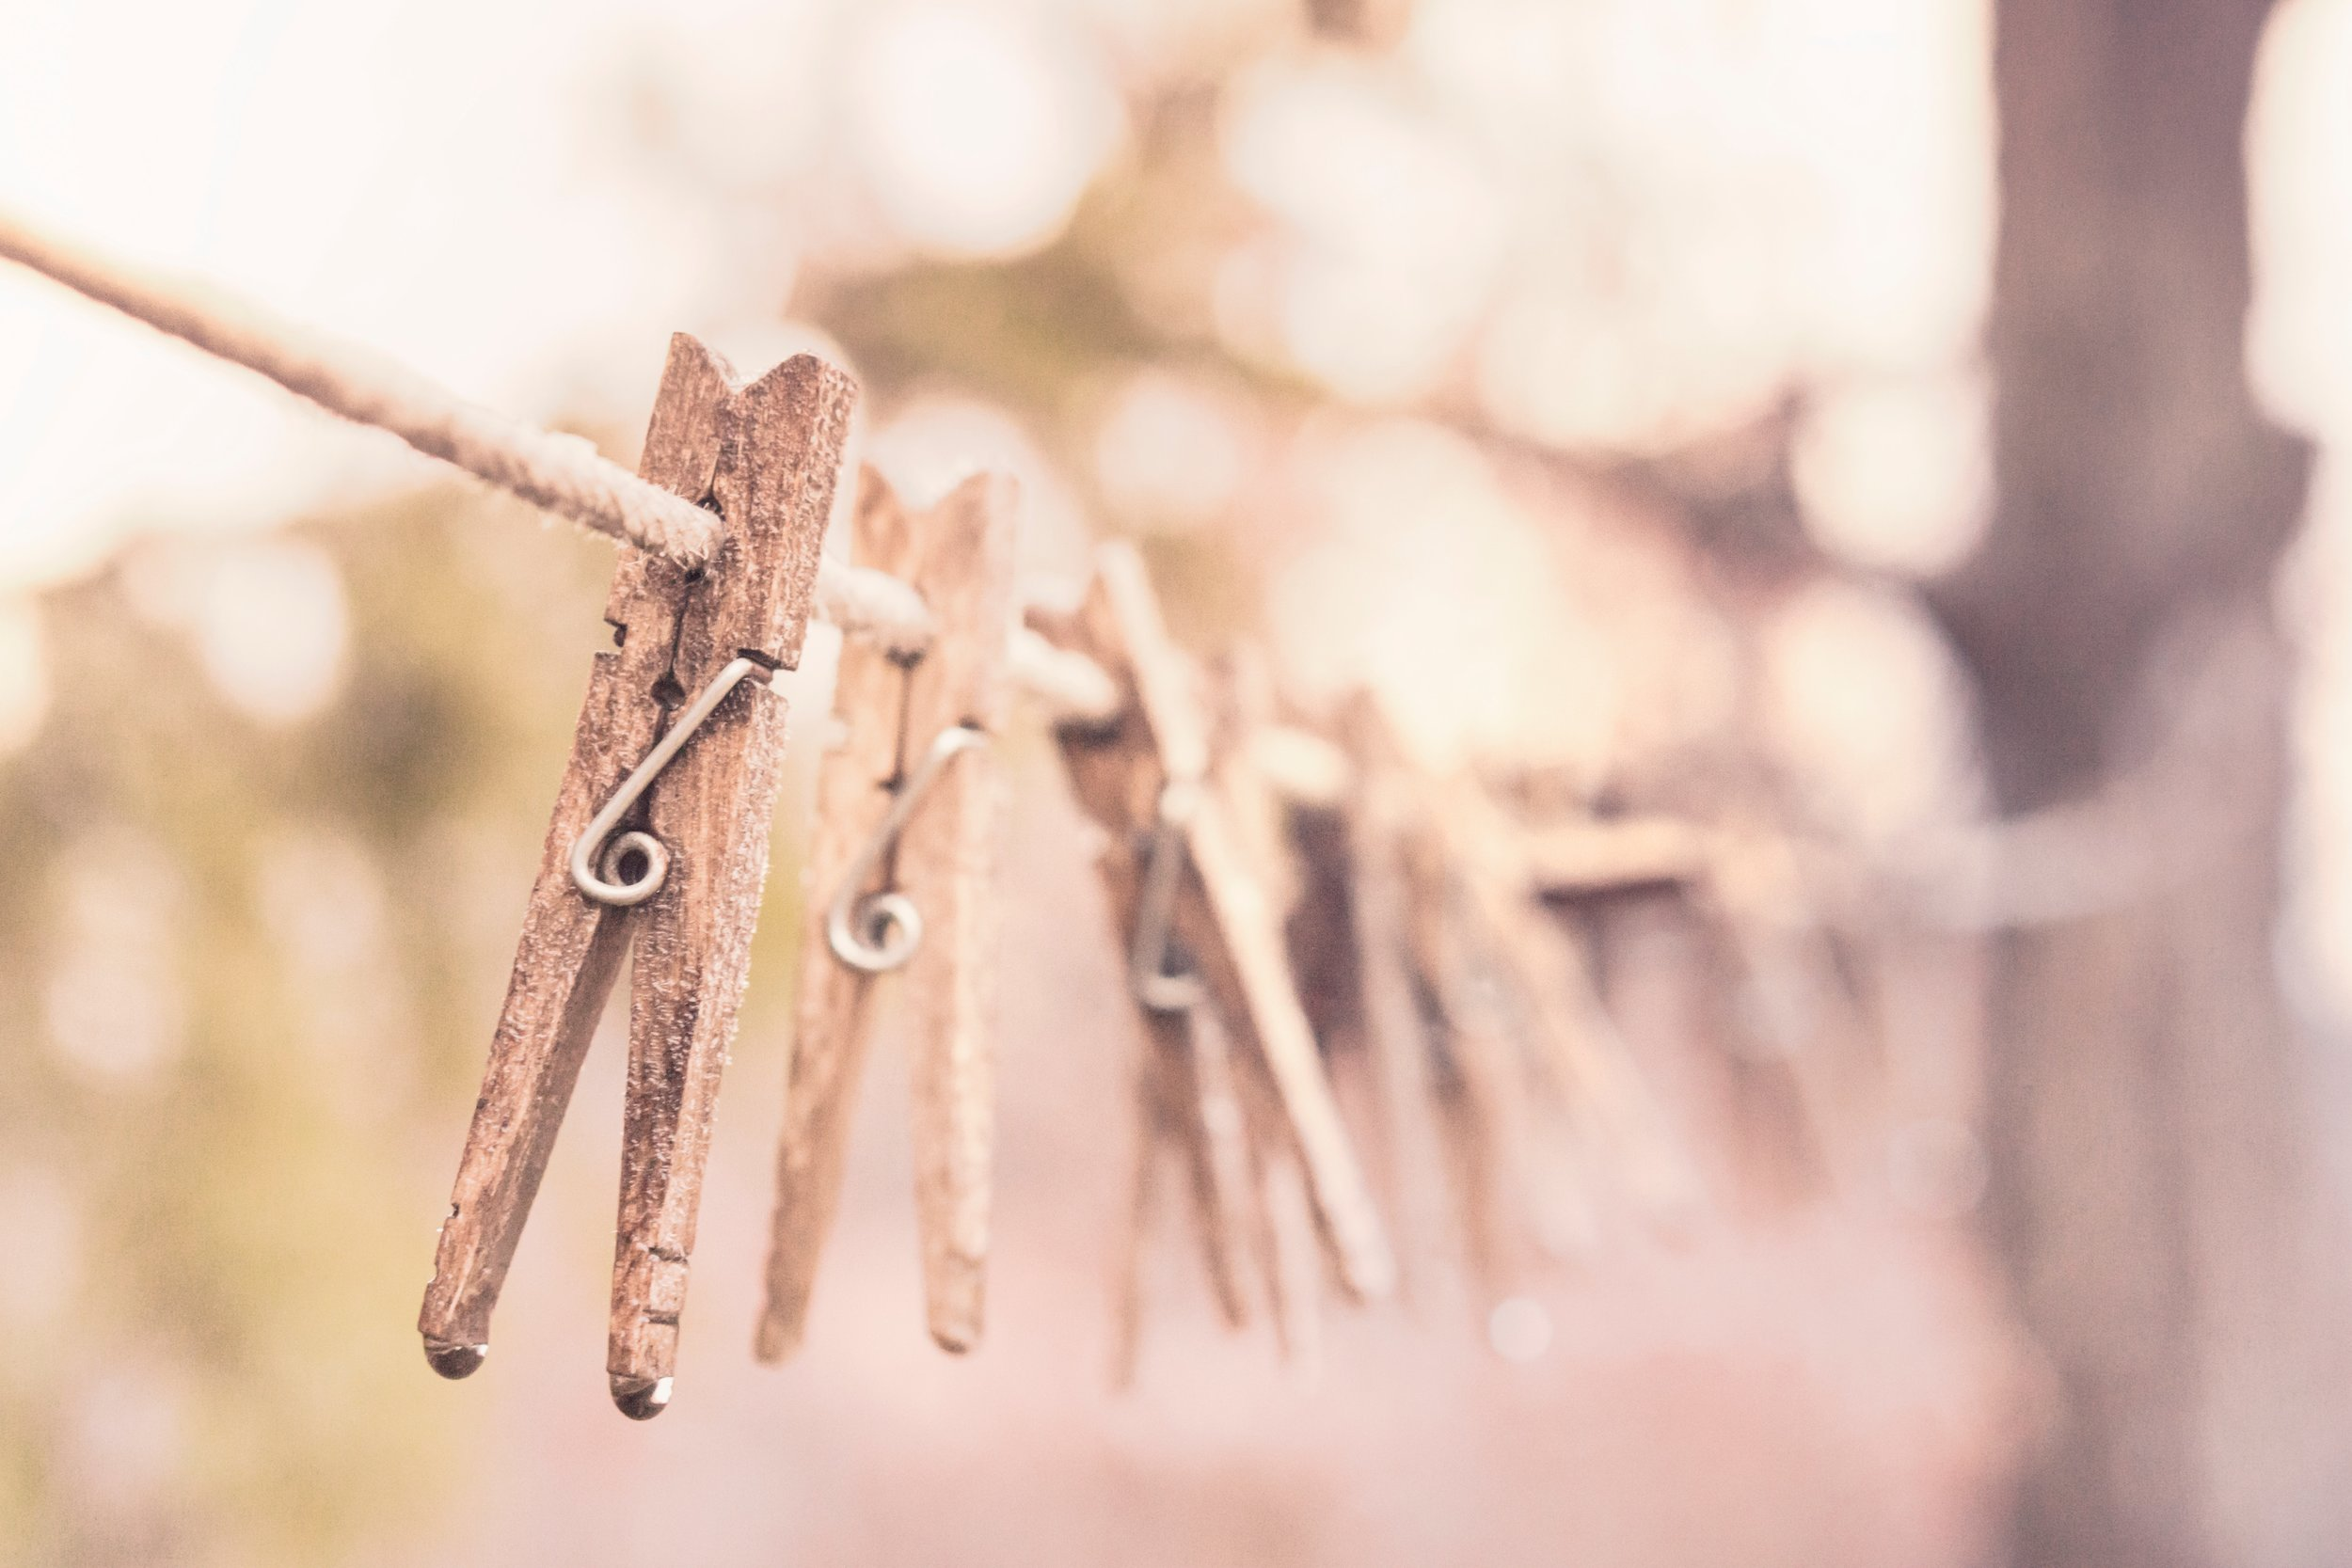 clothes-line-clothes-pegs-clothespins-366.jpg